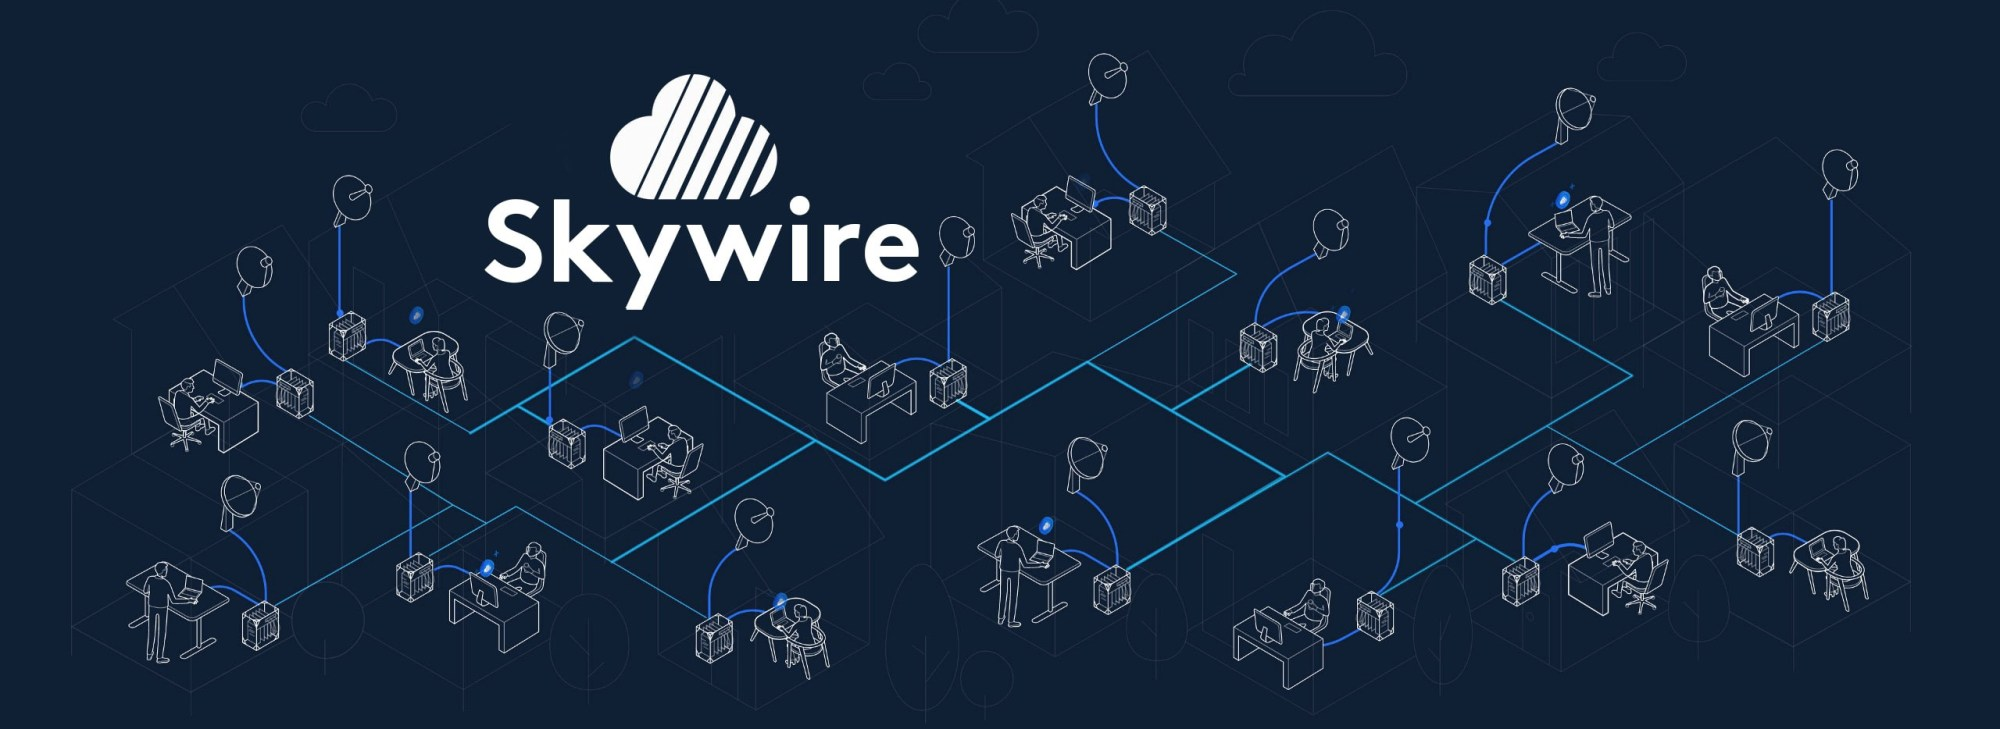 hight resolution of skywire the new internet for the new world